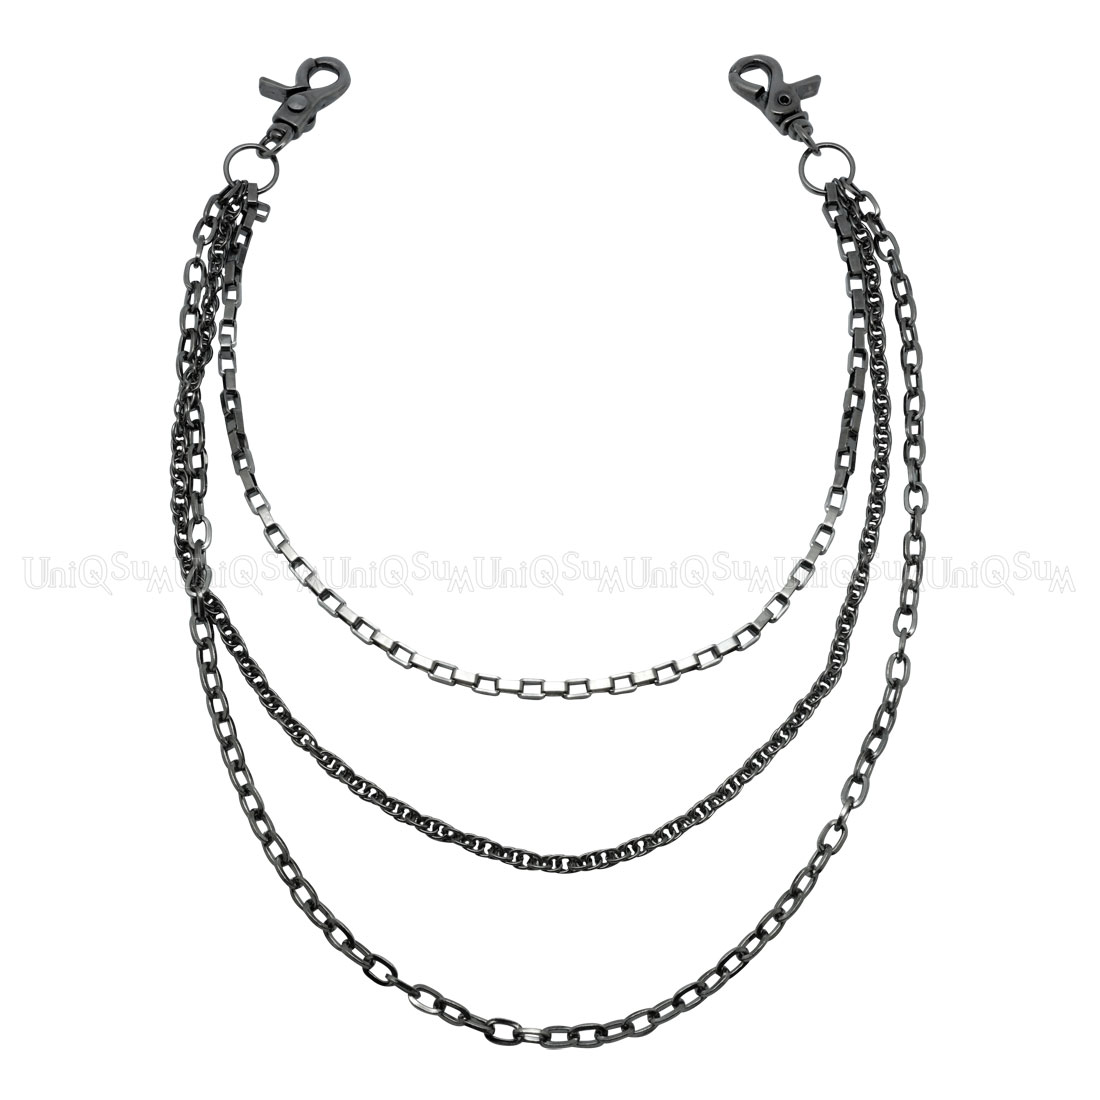 gem lightweight this chain a necklace pin polish faux single features high chains